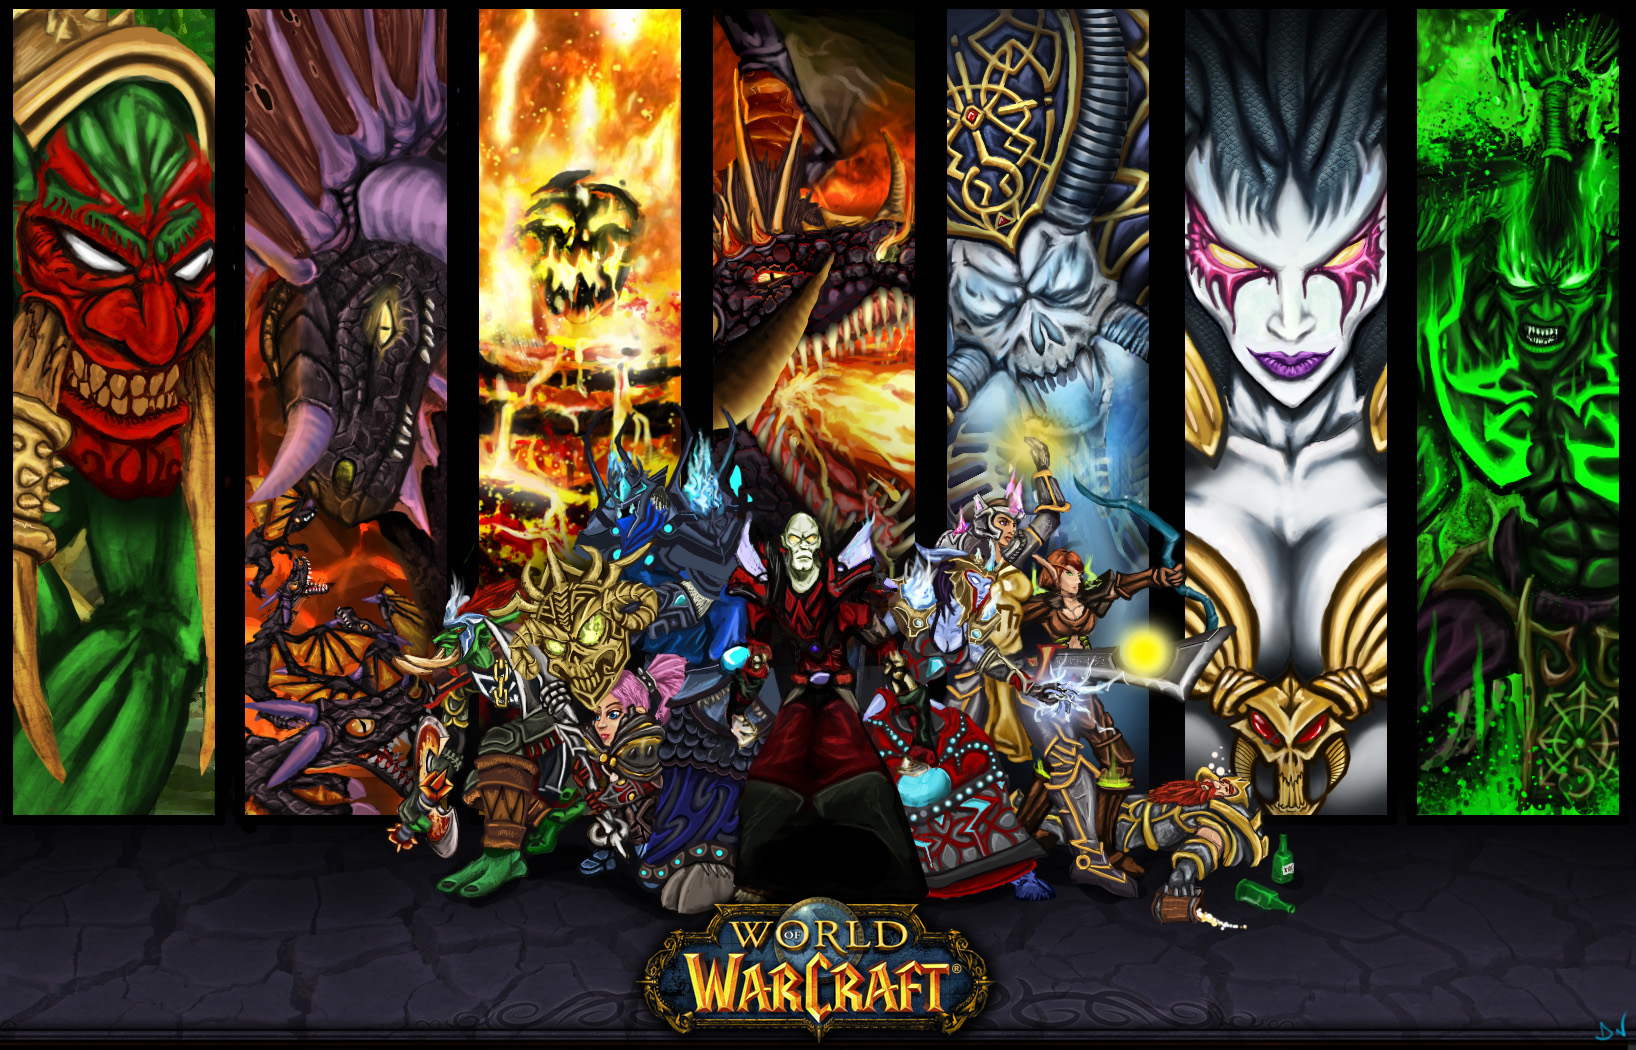 Free Download World Of Warcraft Exclusive Hd Wallpapers 2150